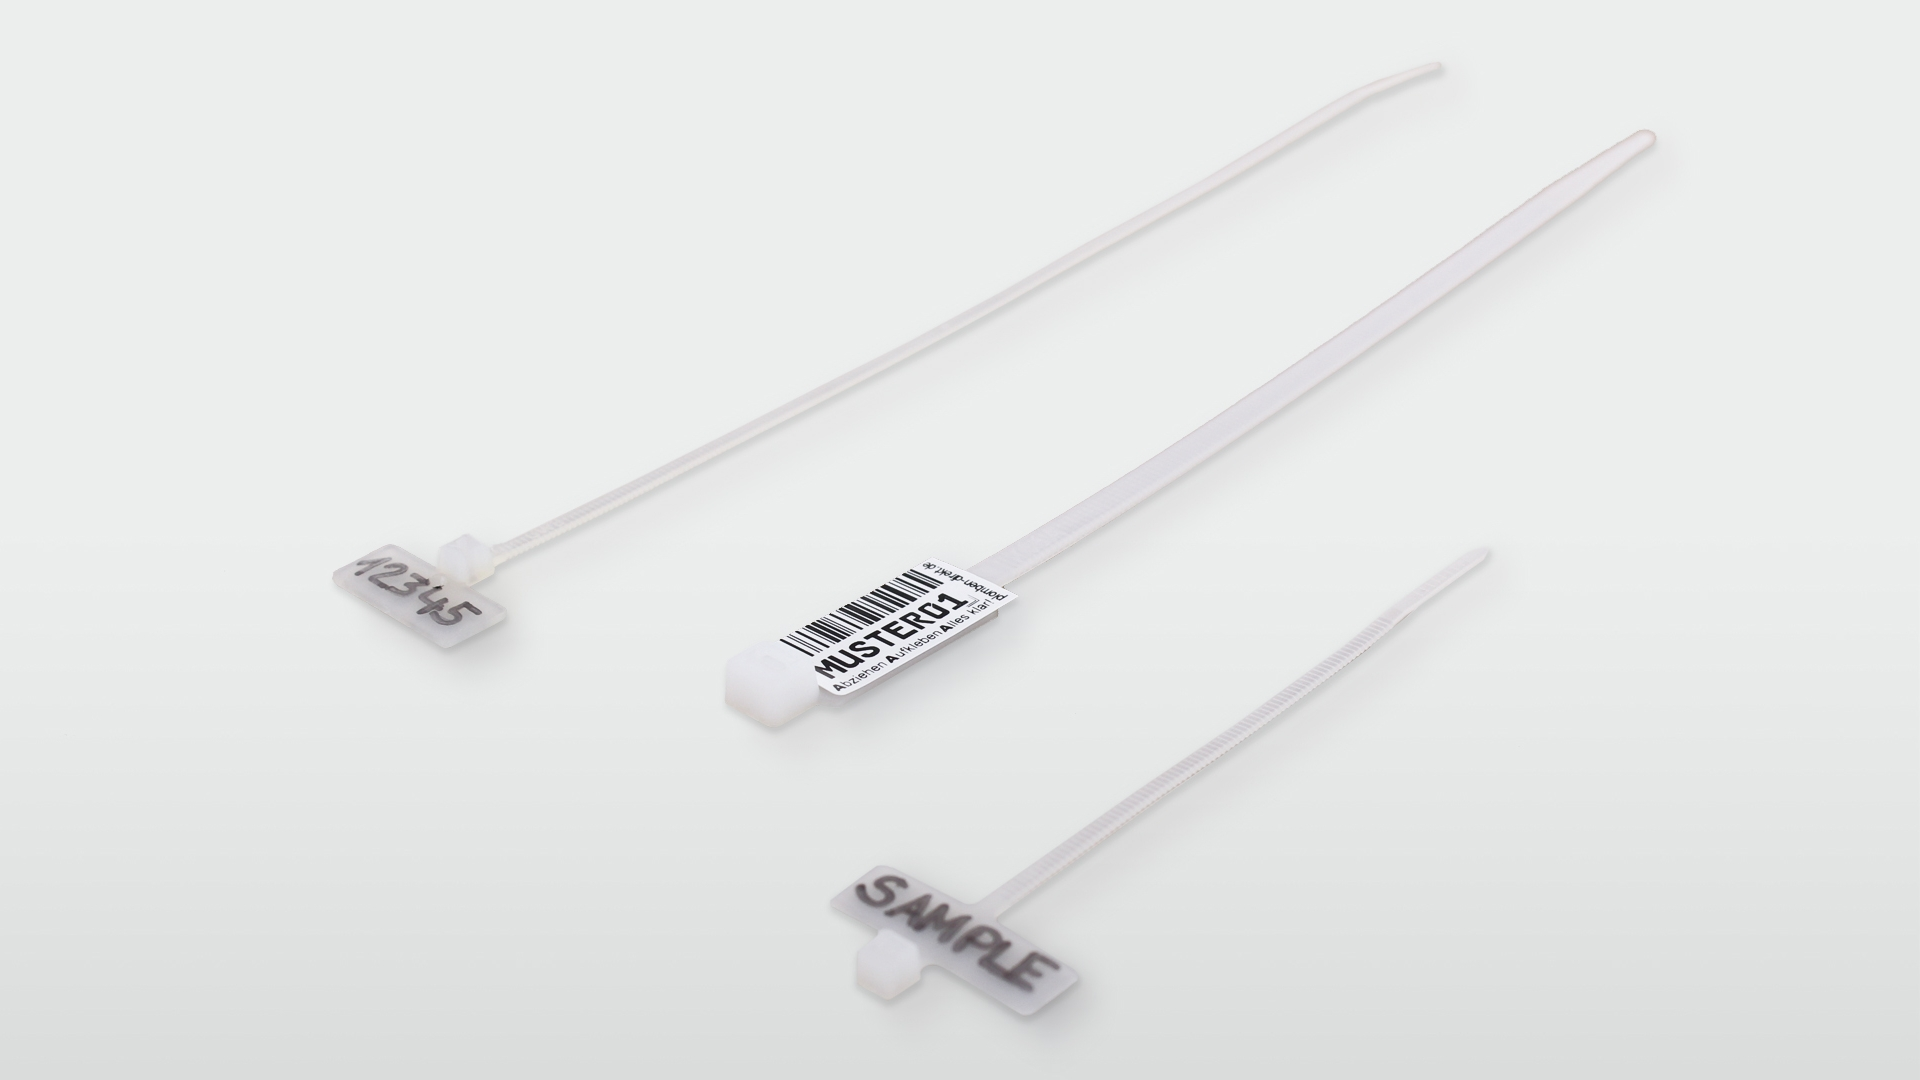 Markable cable ties for any purpose | Ferrotec GmbH